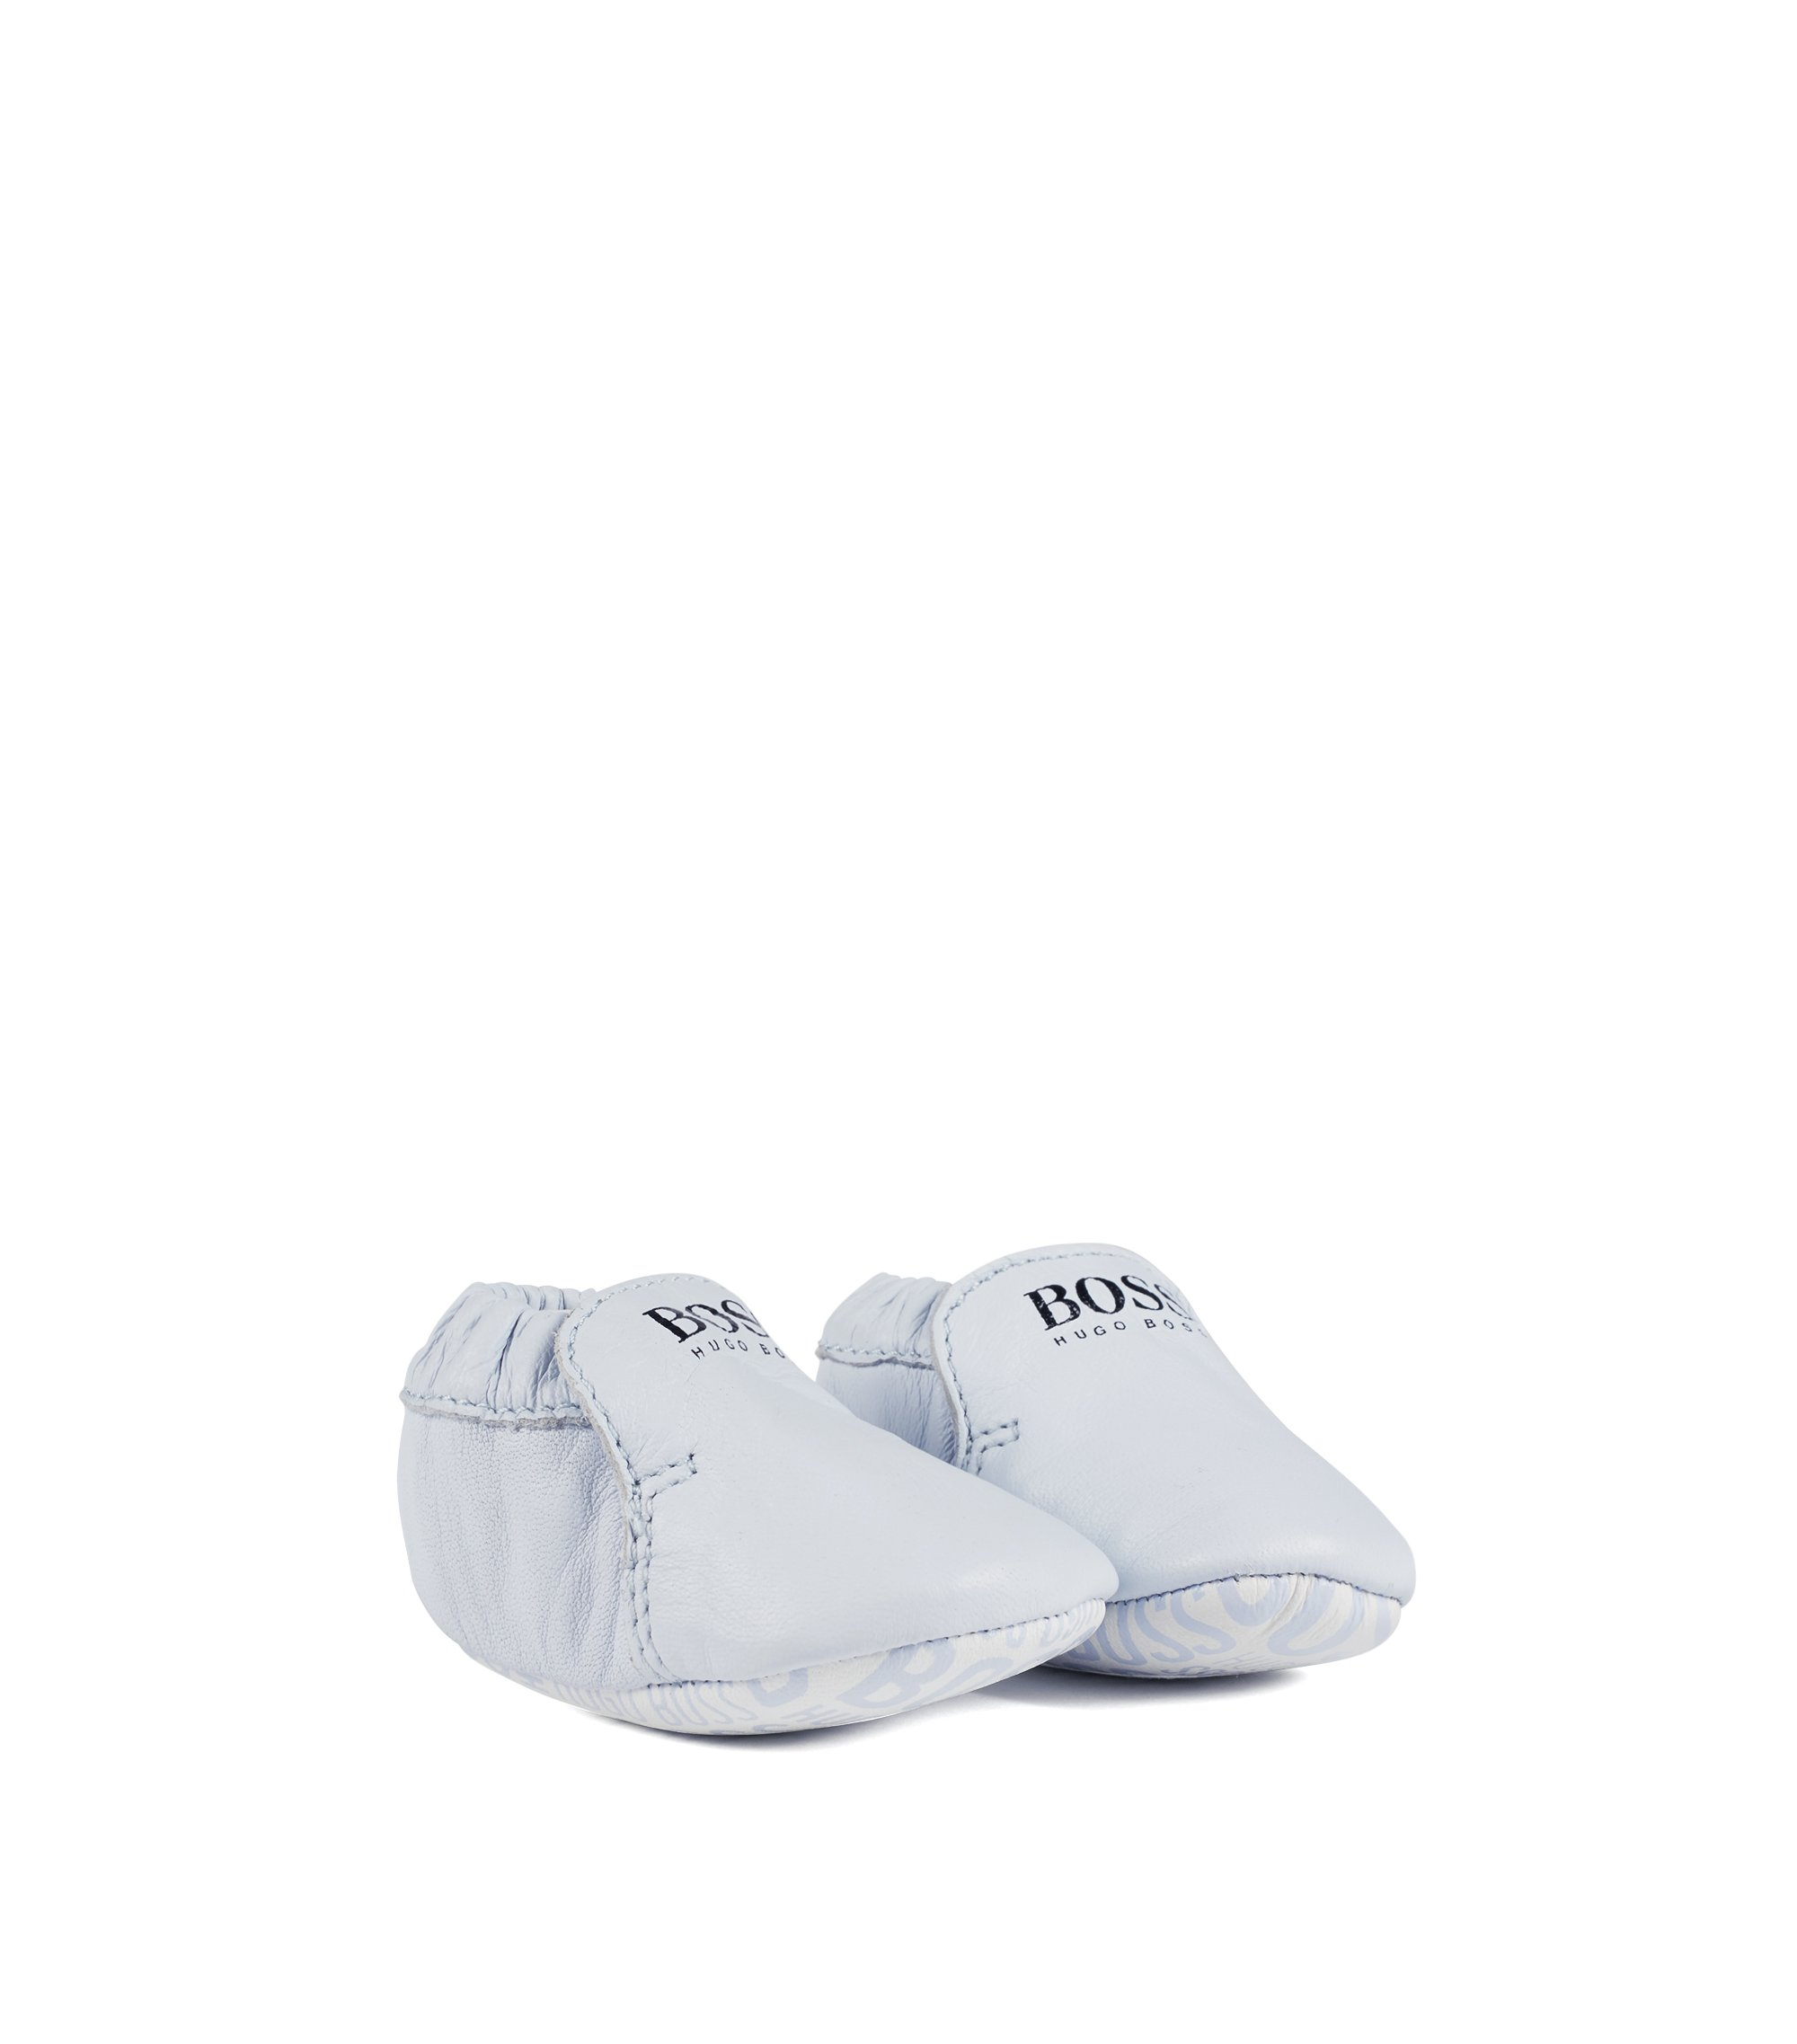 Baby booties in real leather with logo detailing, Light Blue